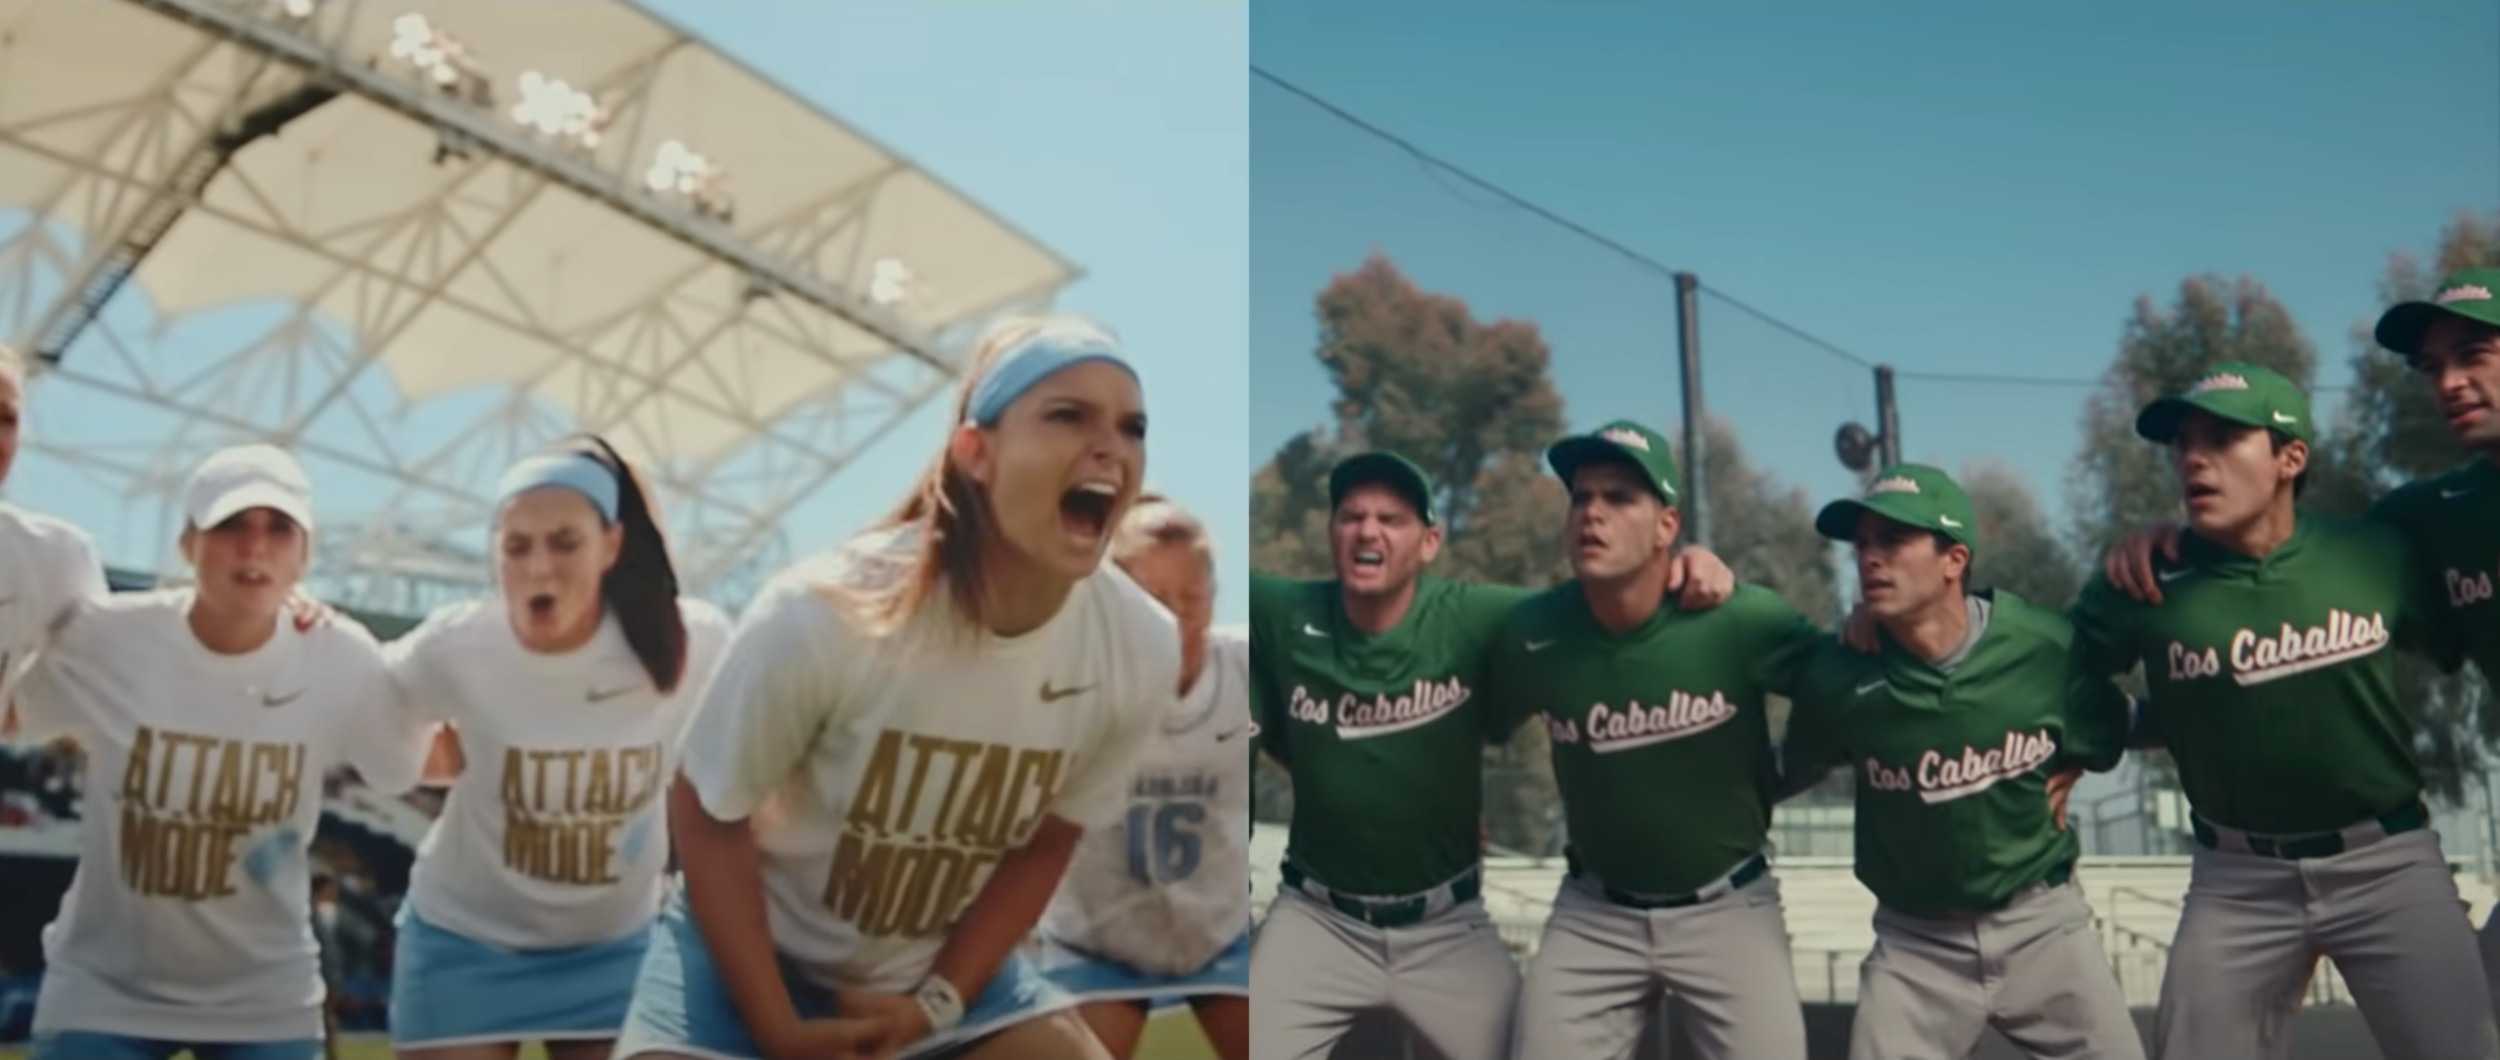 fricción seda Arthur Conan Doyle  WNW MAGAZINE – How the Spot of the Summer Spliced Together: A Conversation  with the Creatives from Nike, W+K, A52, and JOINT